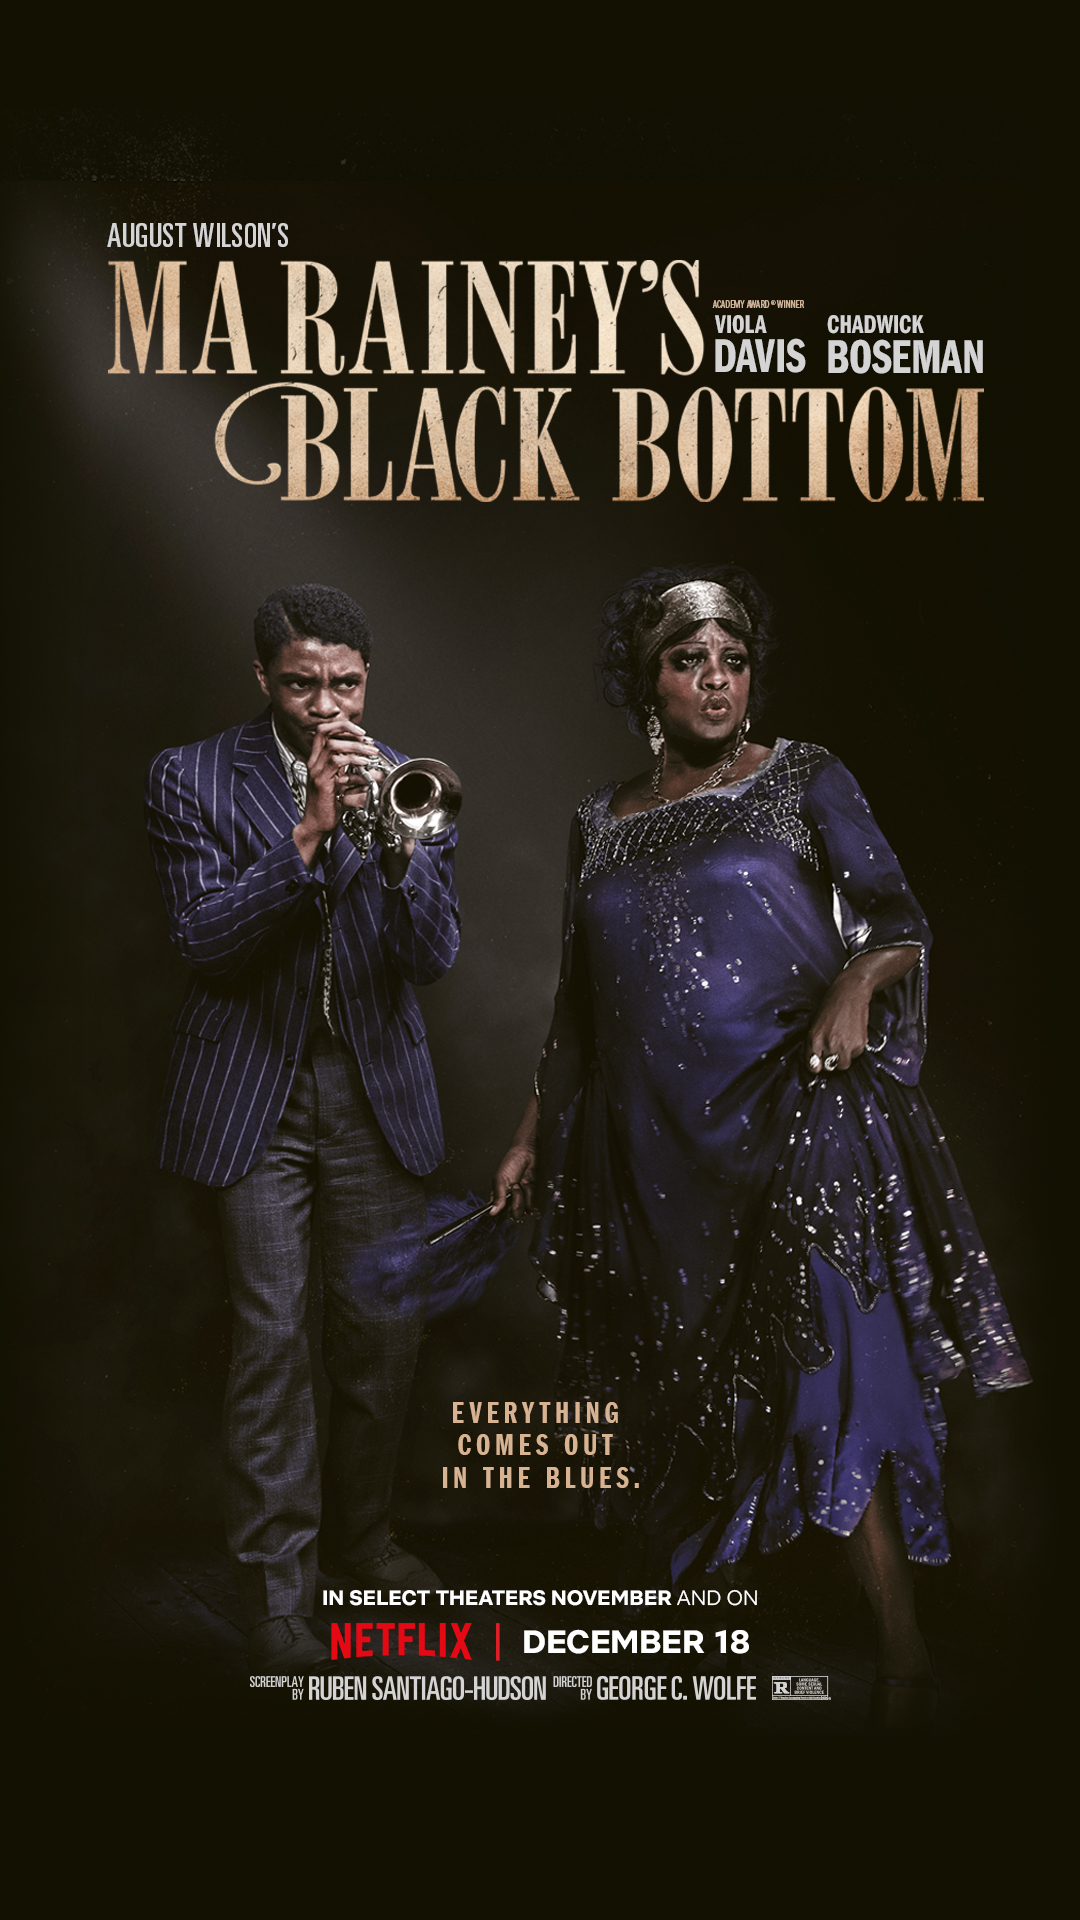 Five Things I Liked About The Film 'Ma Rainey's Black Bottom'